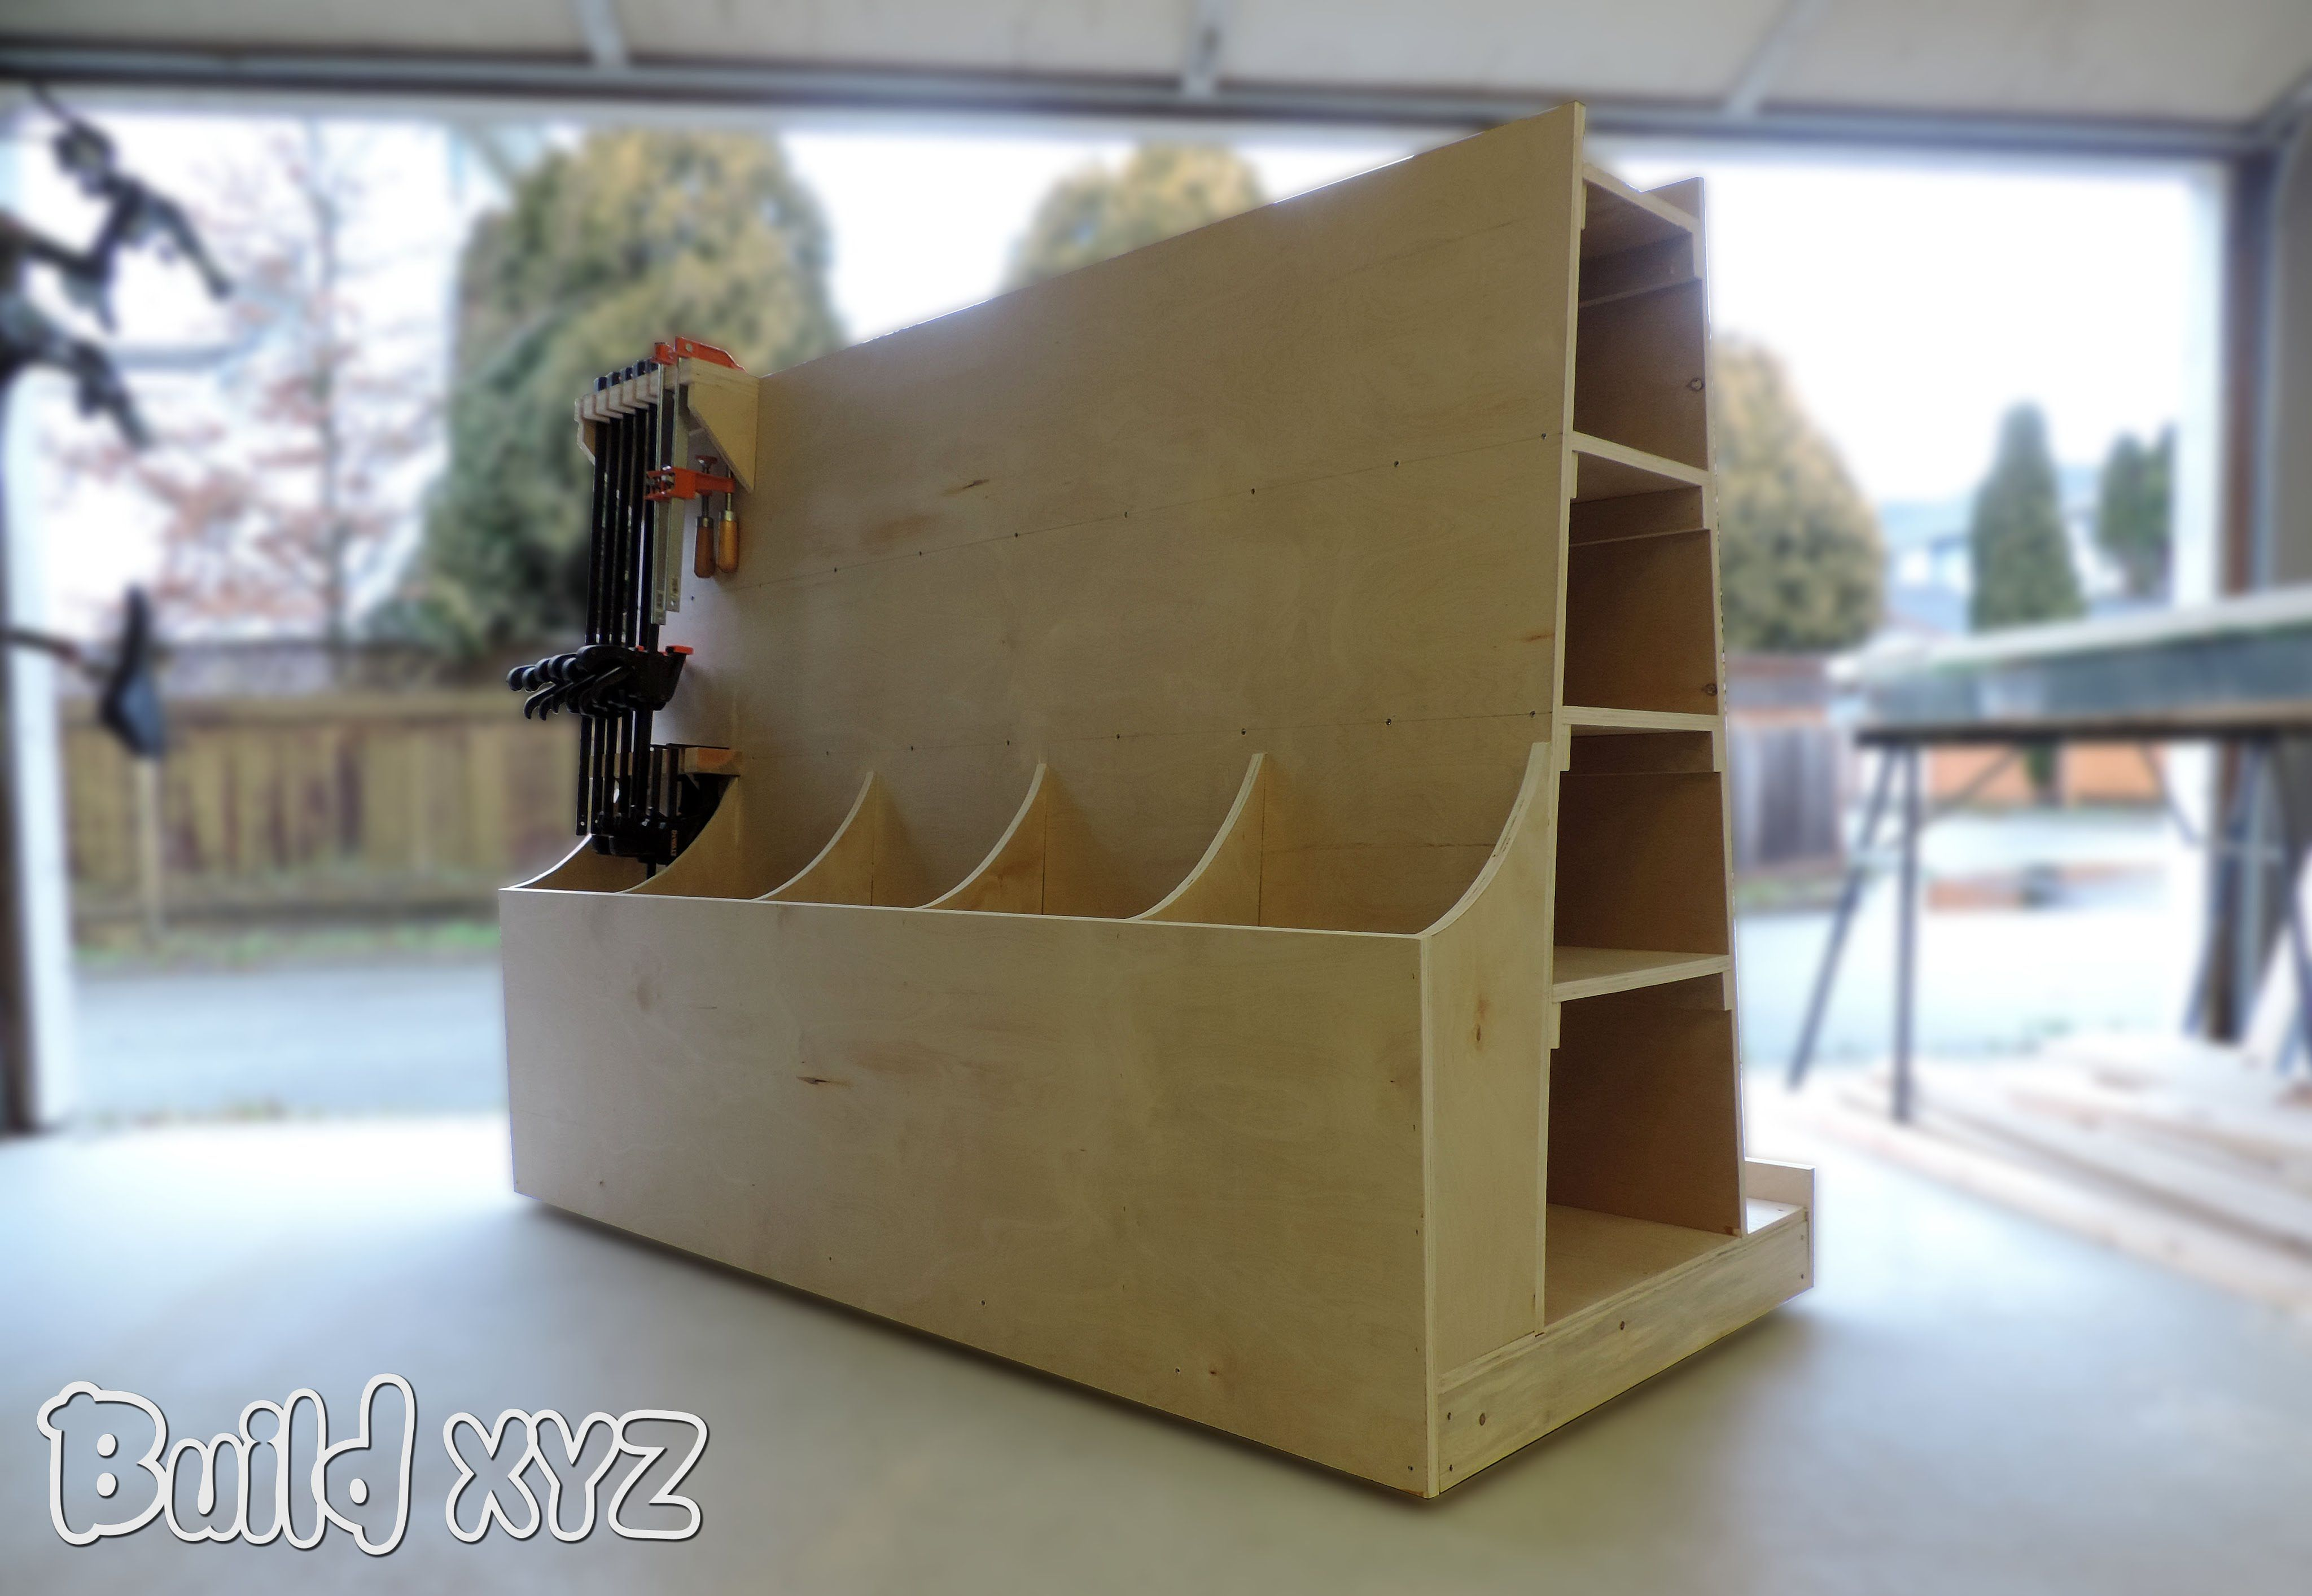 Plywood How To Build a Rolling